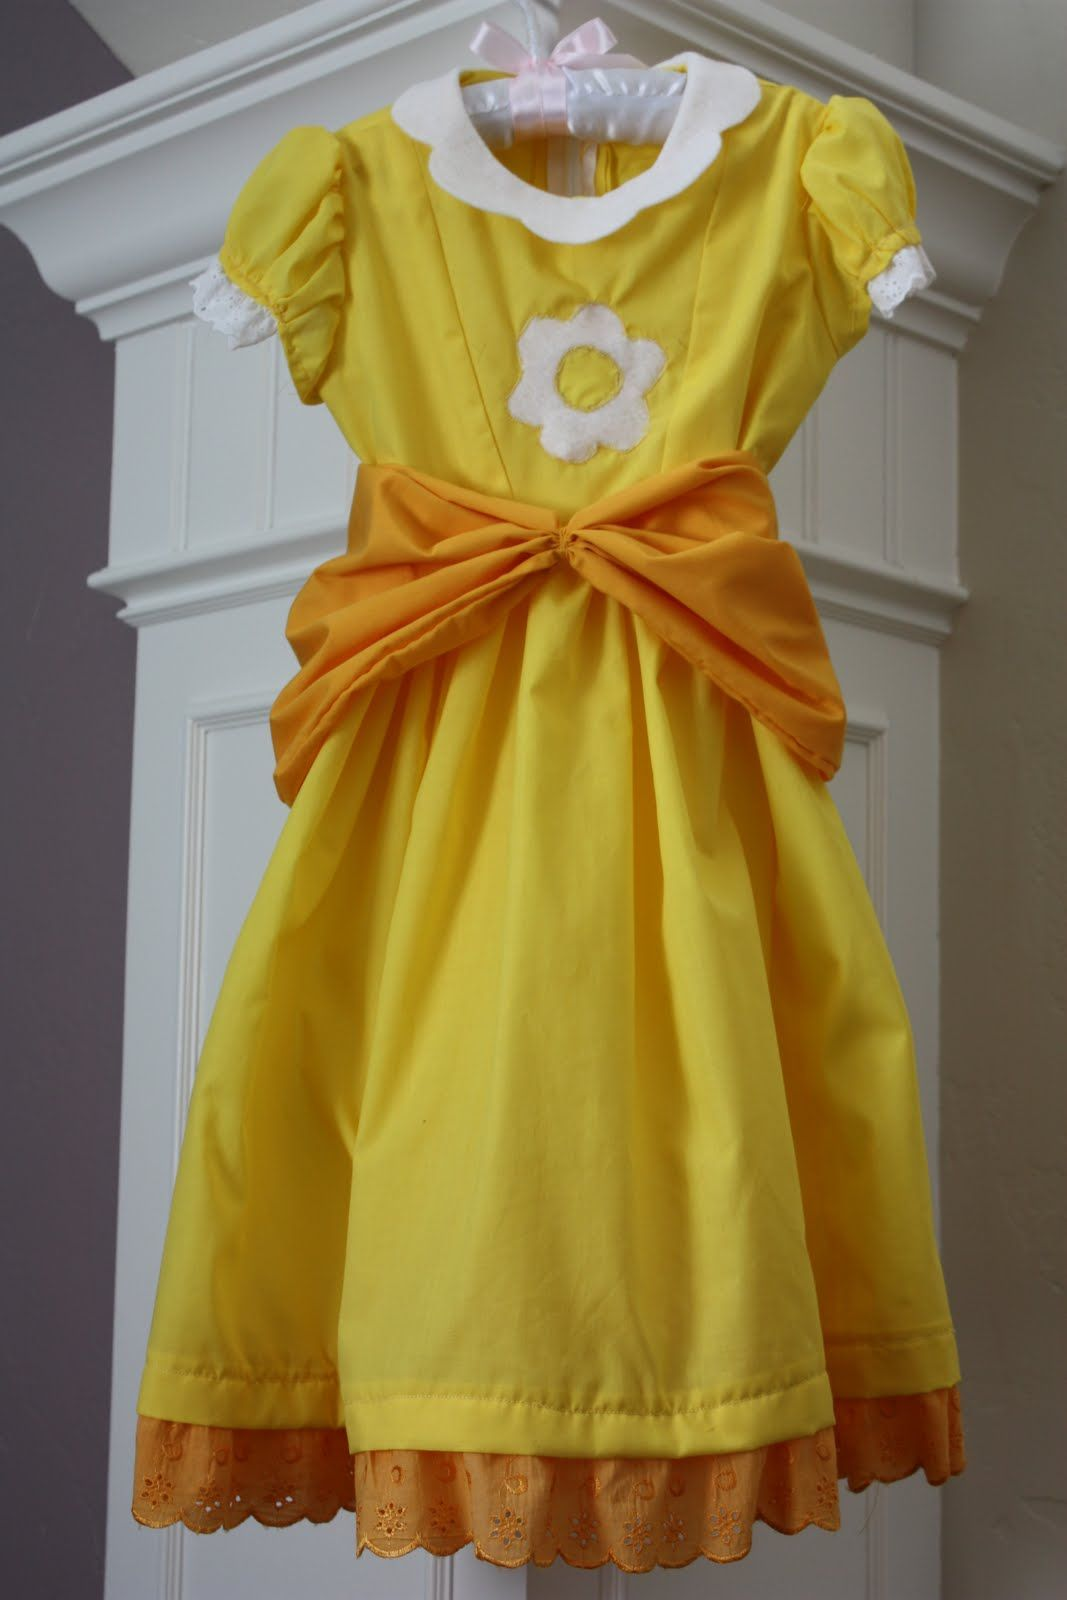 princess daisy costume - Google Search | Sewing ideas | Pinterest ...